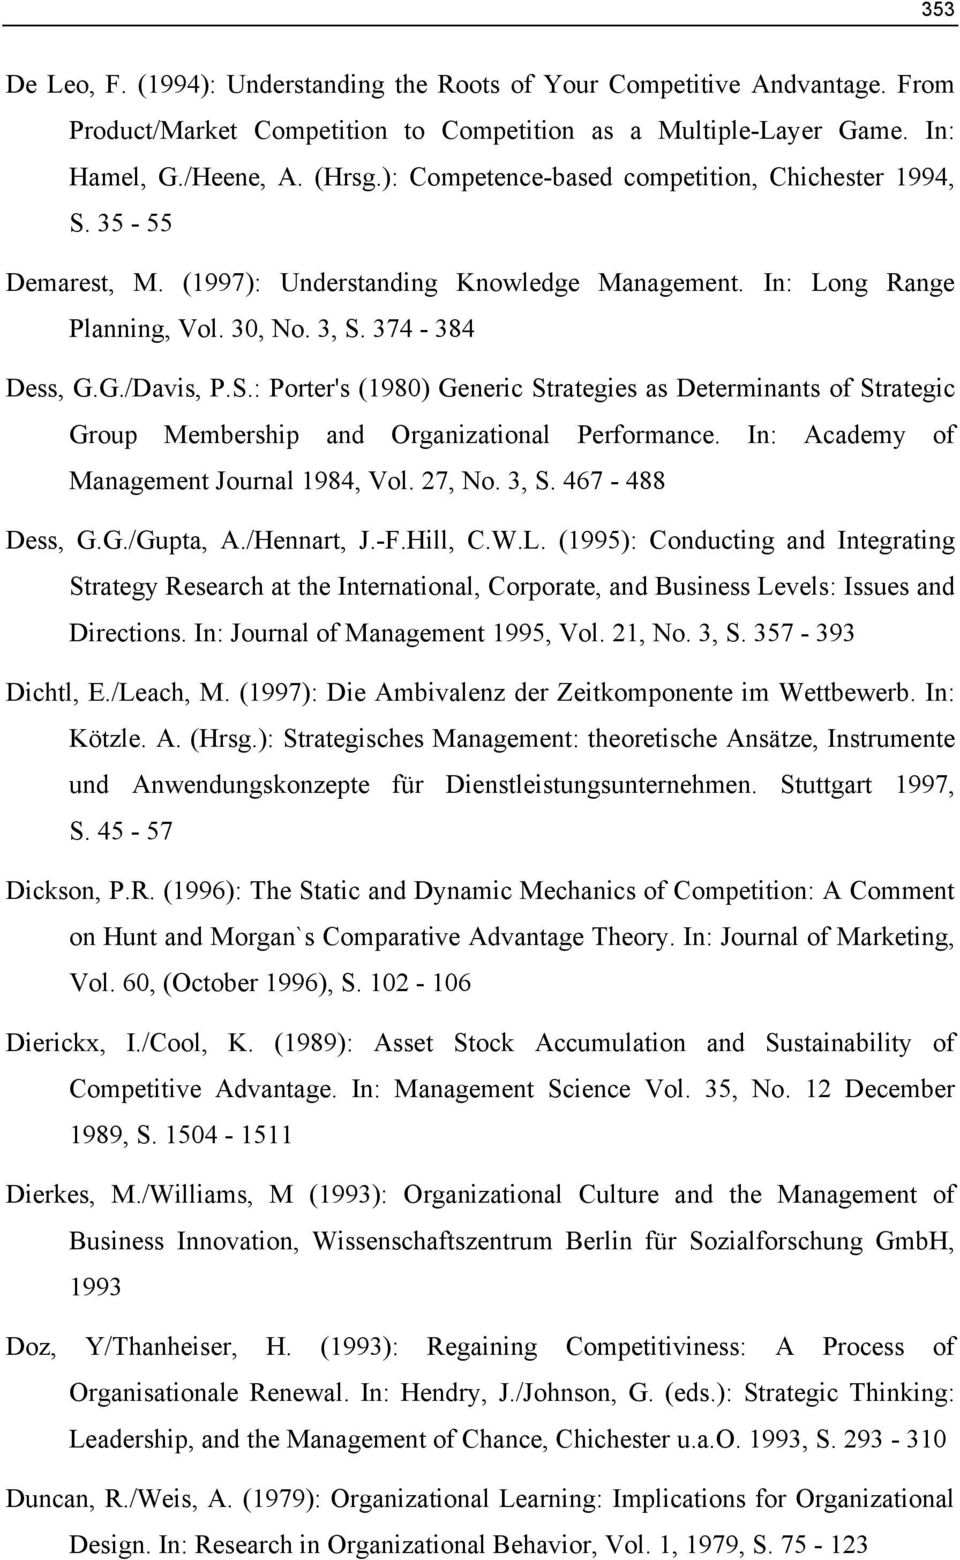 In: Academy of Management Journal 1984, Vol. 27, No. 3, S. 467-488 Dess, G.G./Gupta, A./Hennart, J.-F.Hill, C.W.L.